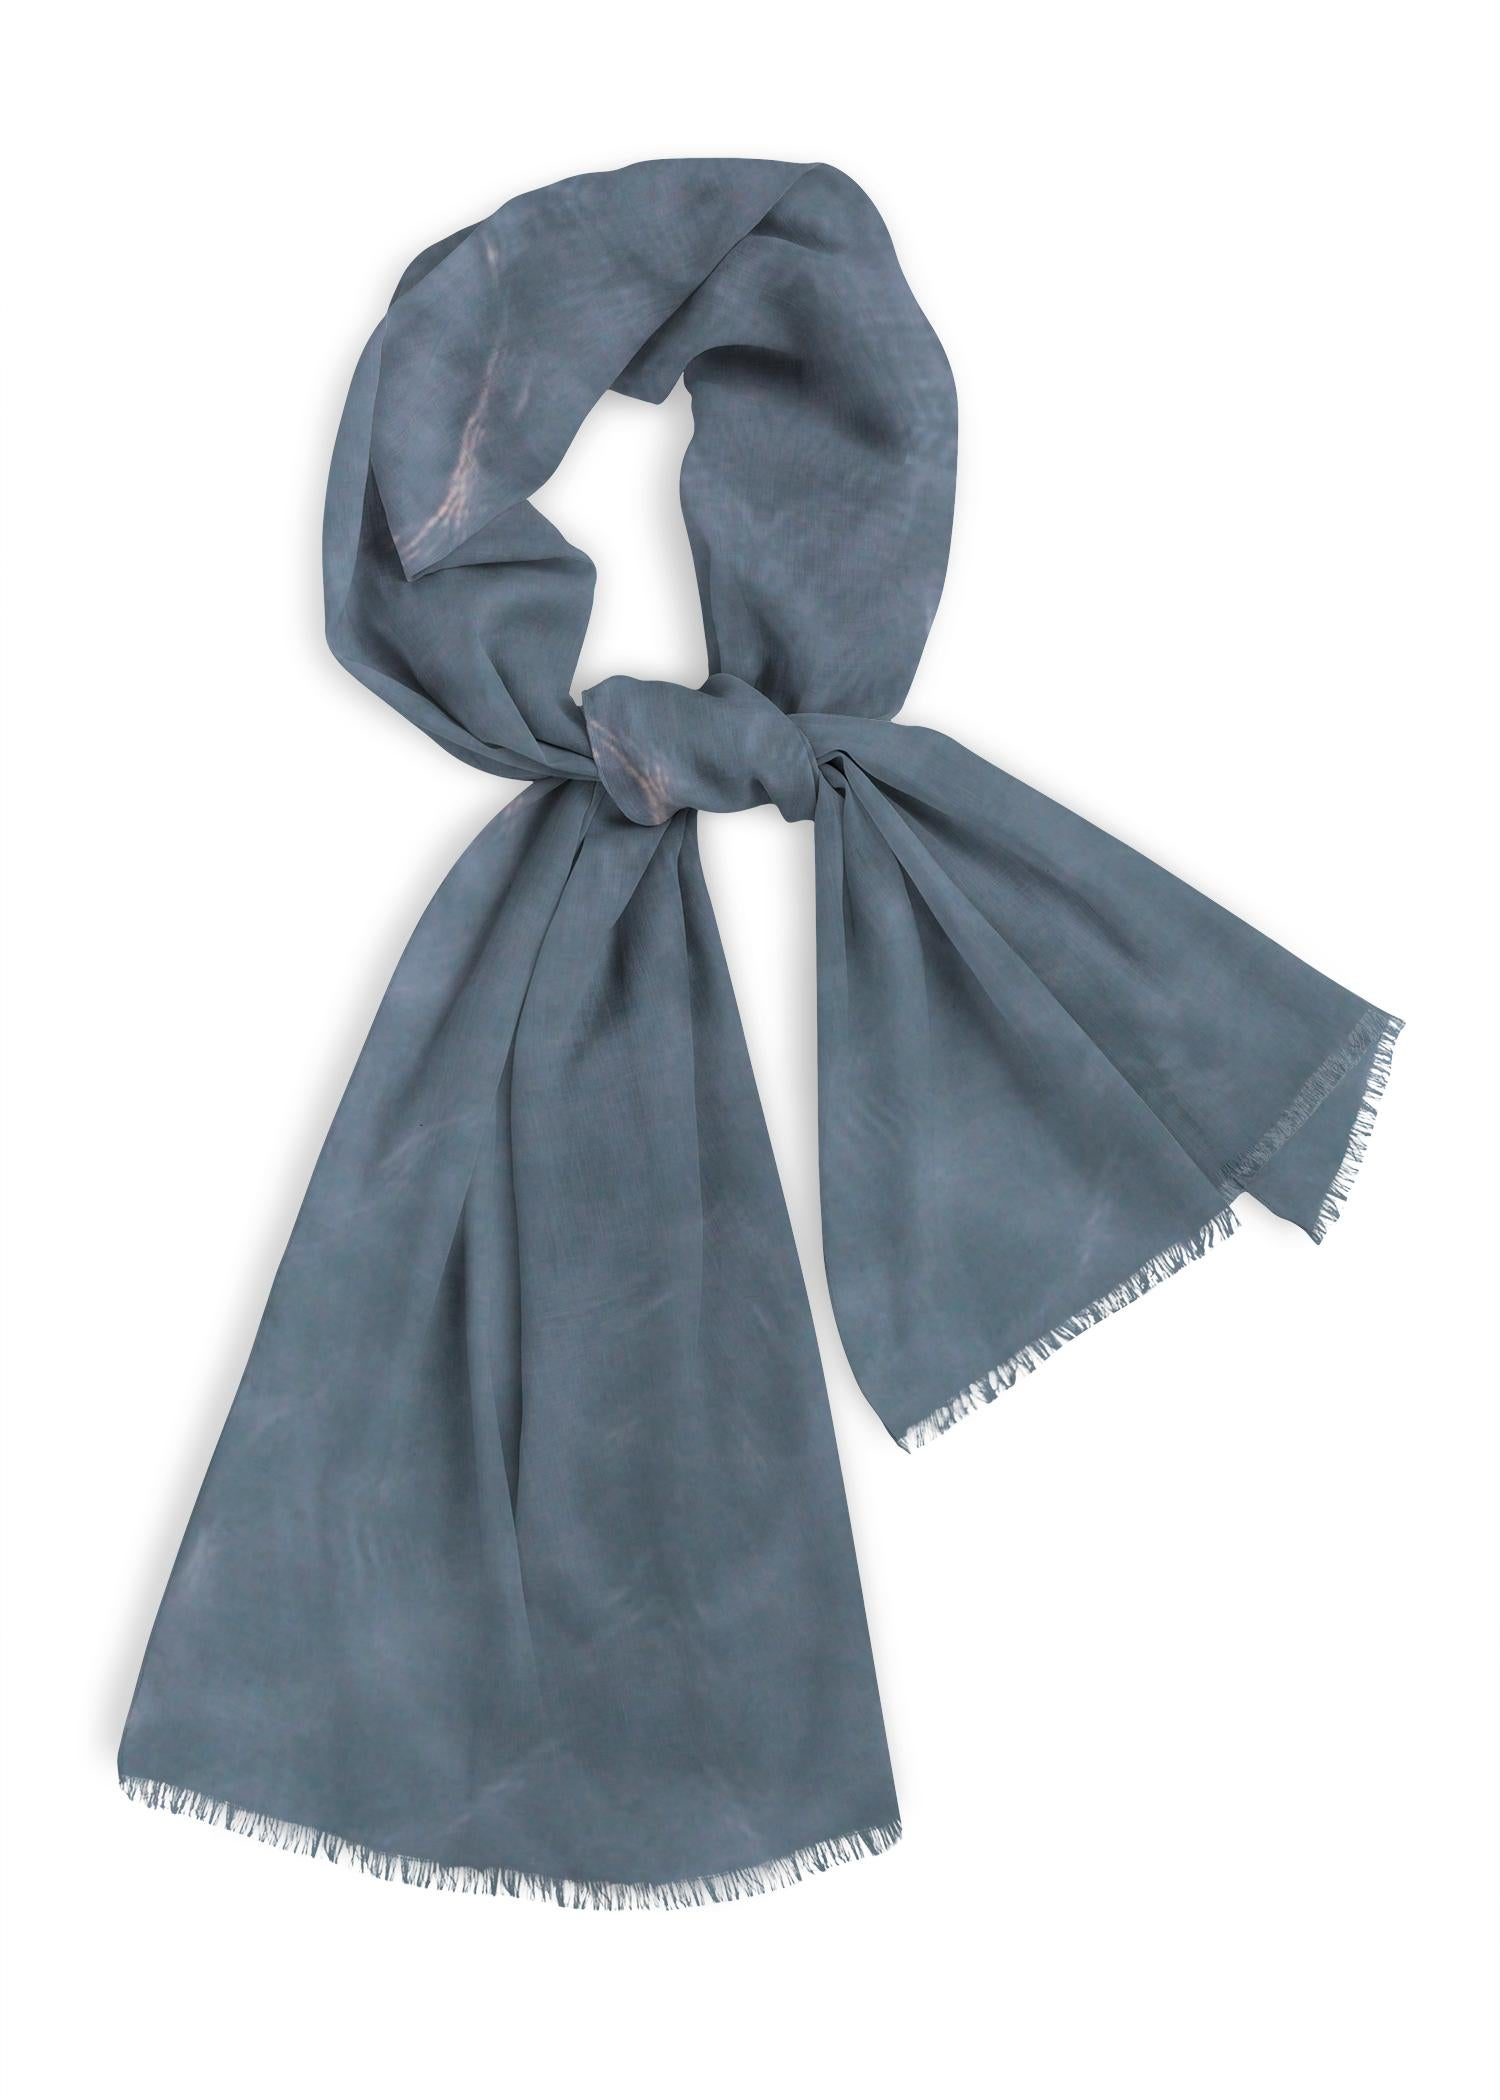 Caribbean Blue Water Natural Cotton Scarf Designed By: Christine Aka Stine1